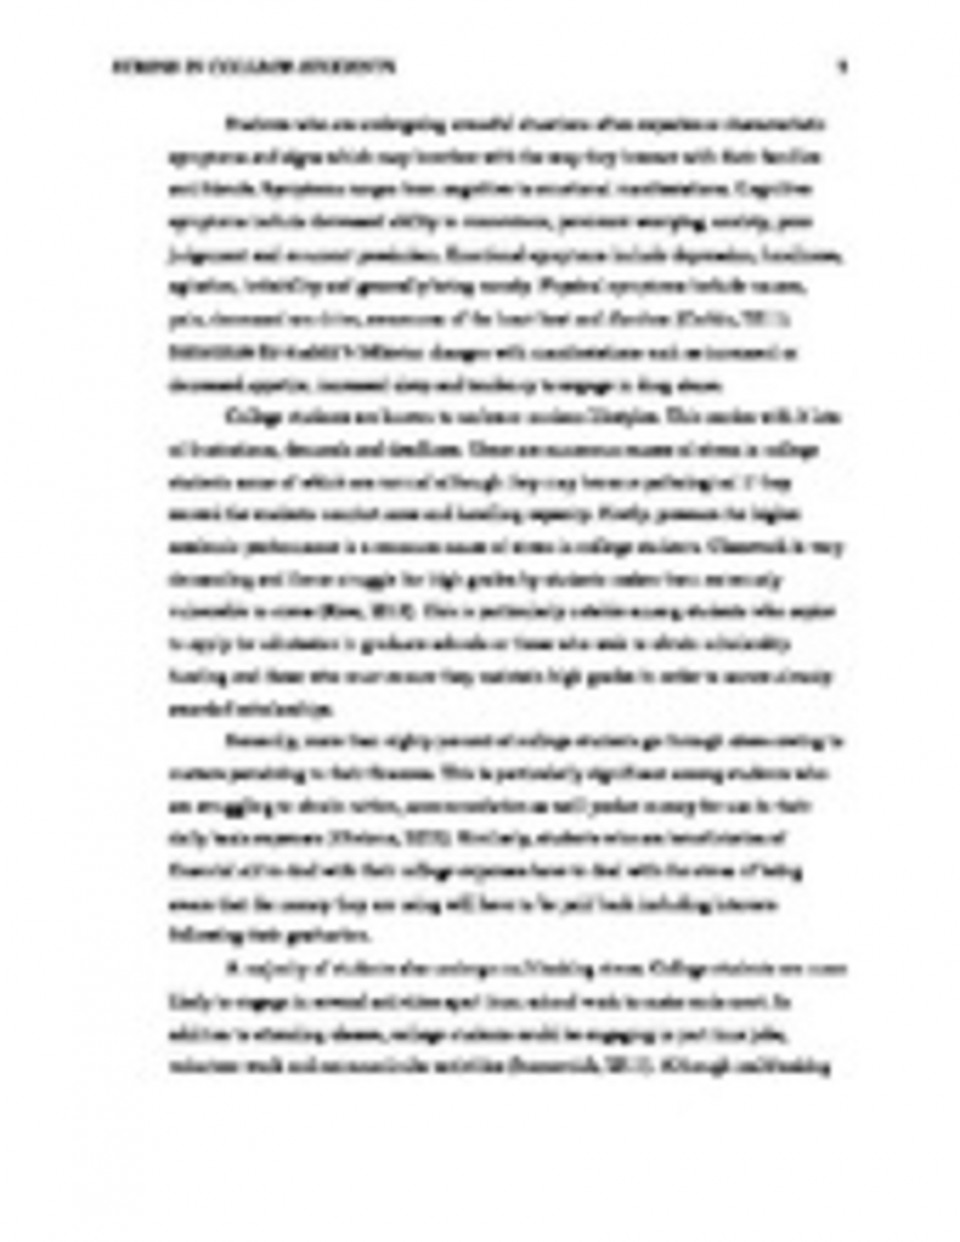 002 Stress Management Complete  Copypage2 Essay Awesome Questions Outline Pdf960